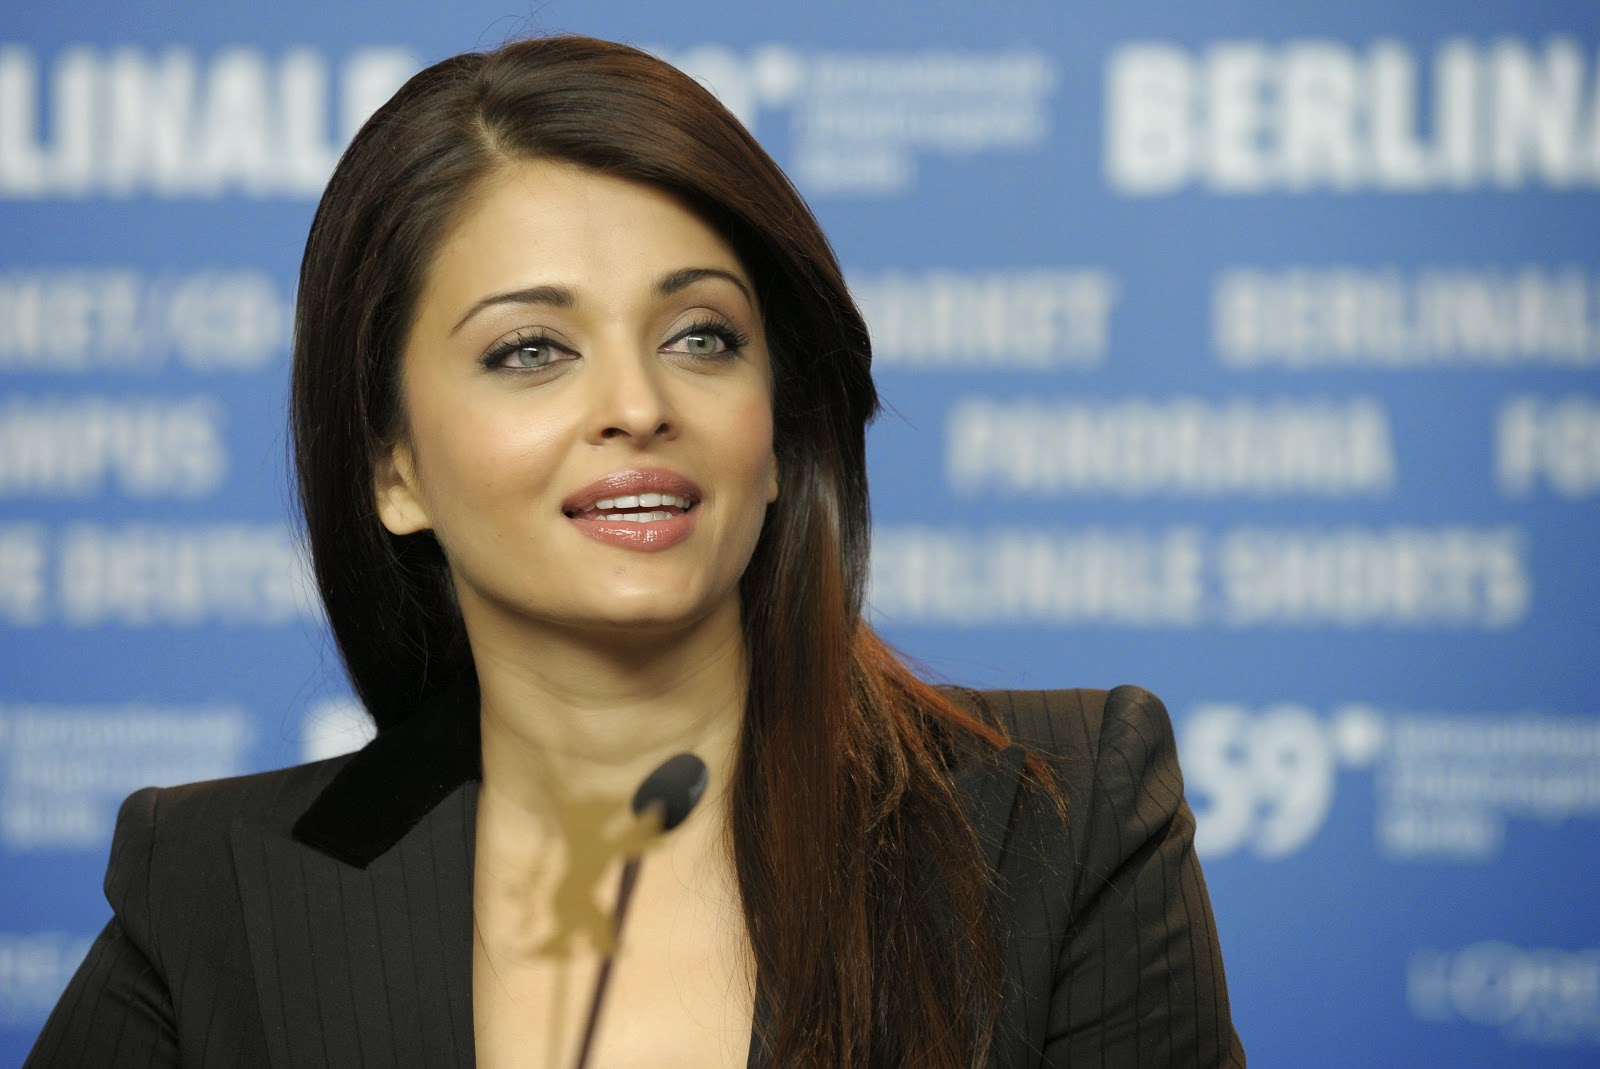 Aishwarya Rai Bachchan in Black Dress HD Photos- 59th Berlin Film Festival - 'Pink Panther 2' Photocall